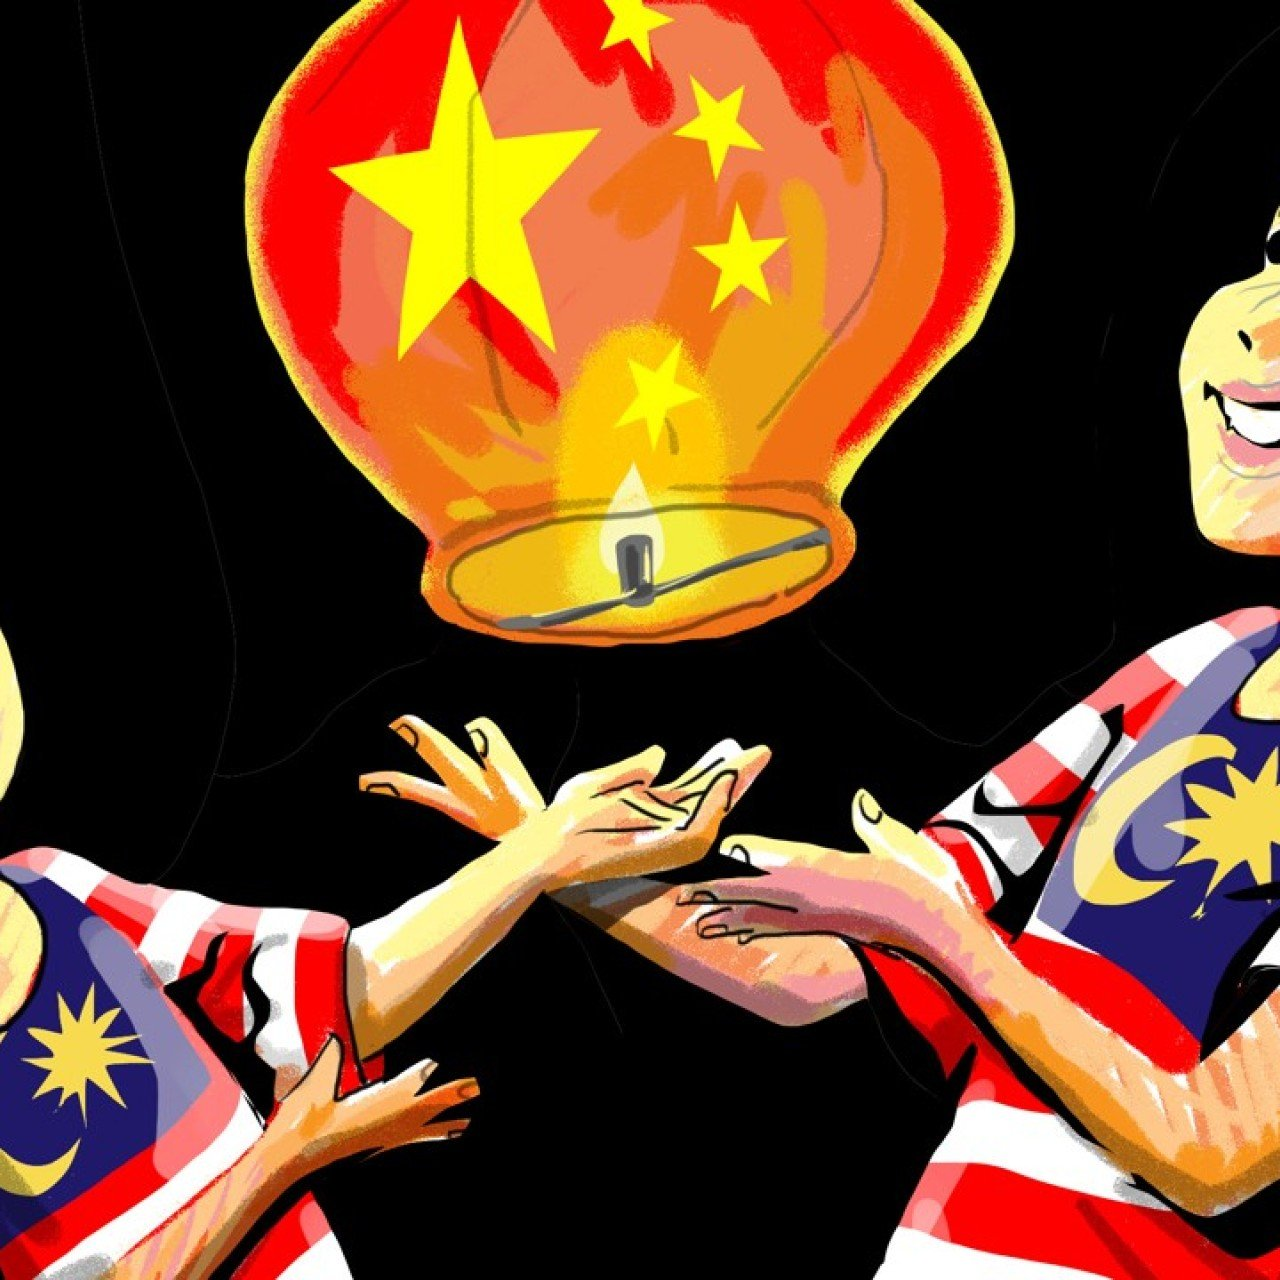 Ethnic Chinese in Malaysia are celebrating China's rise – but as